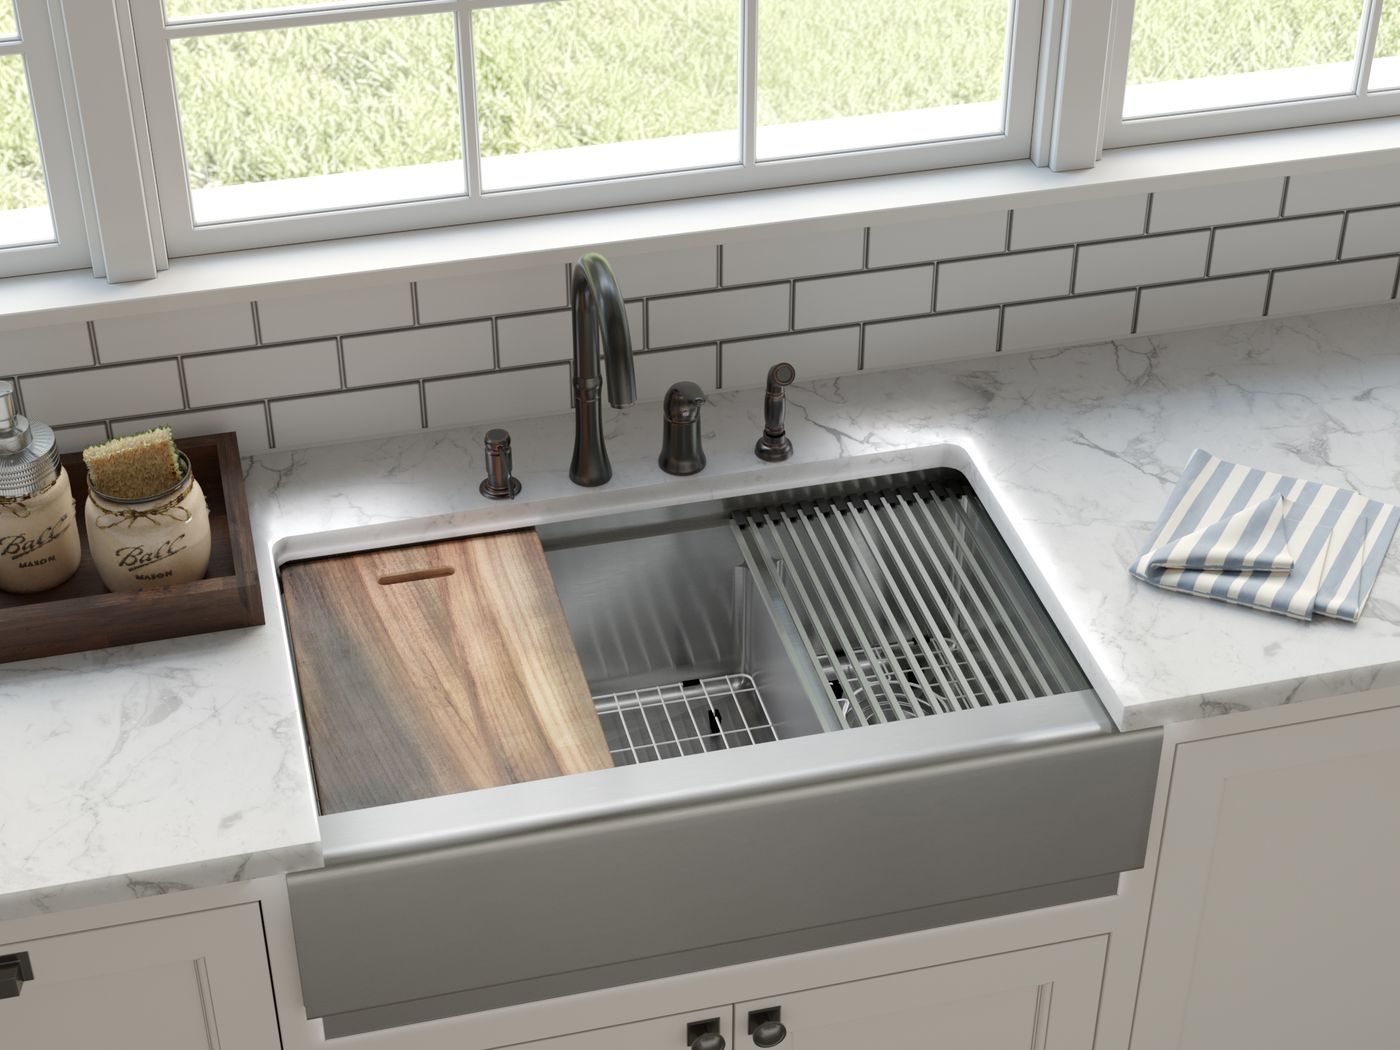 Stainless Steel Sinks Choosing The Best One For You This Old House